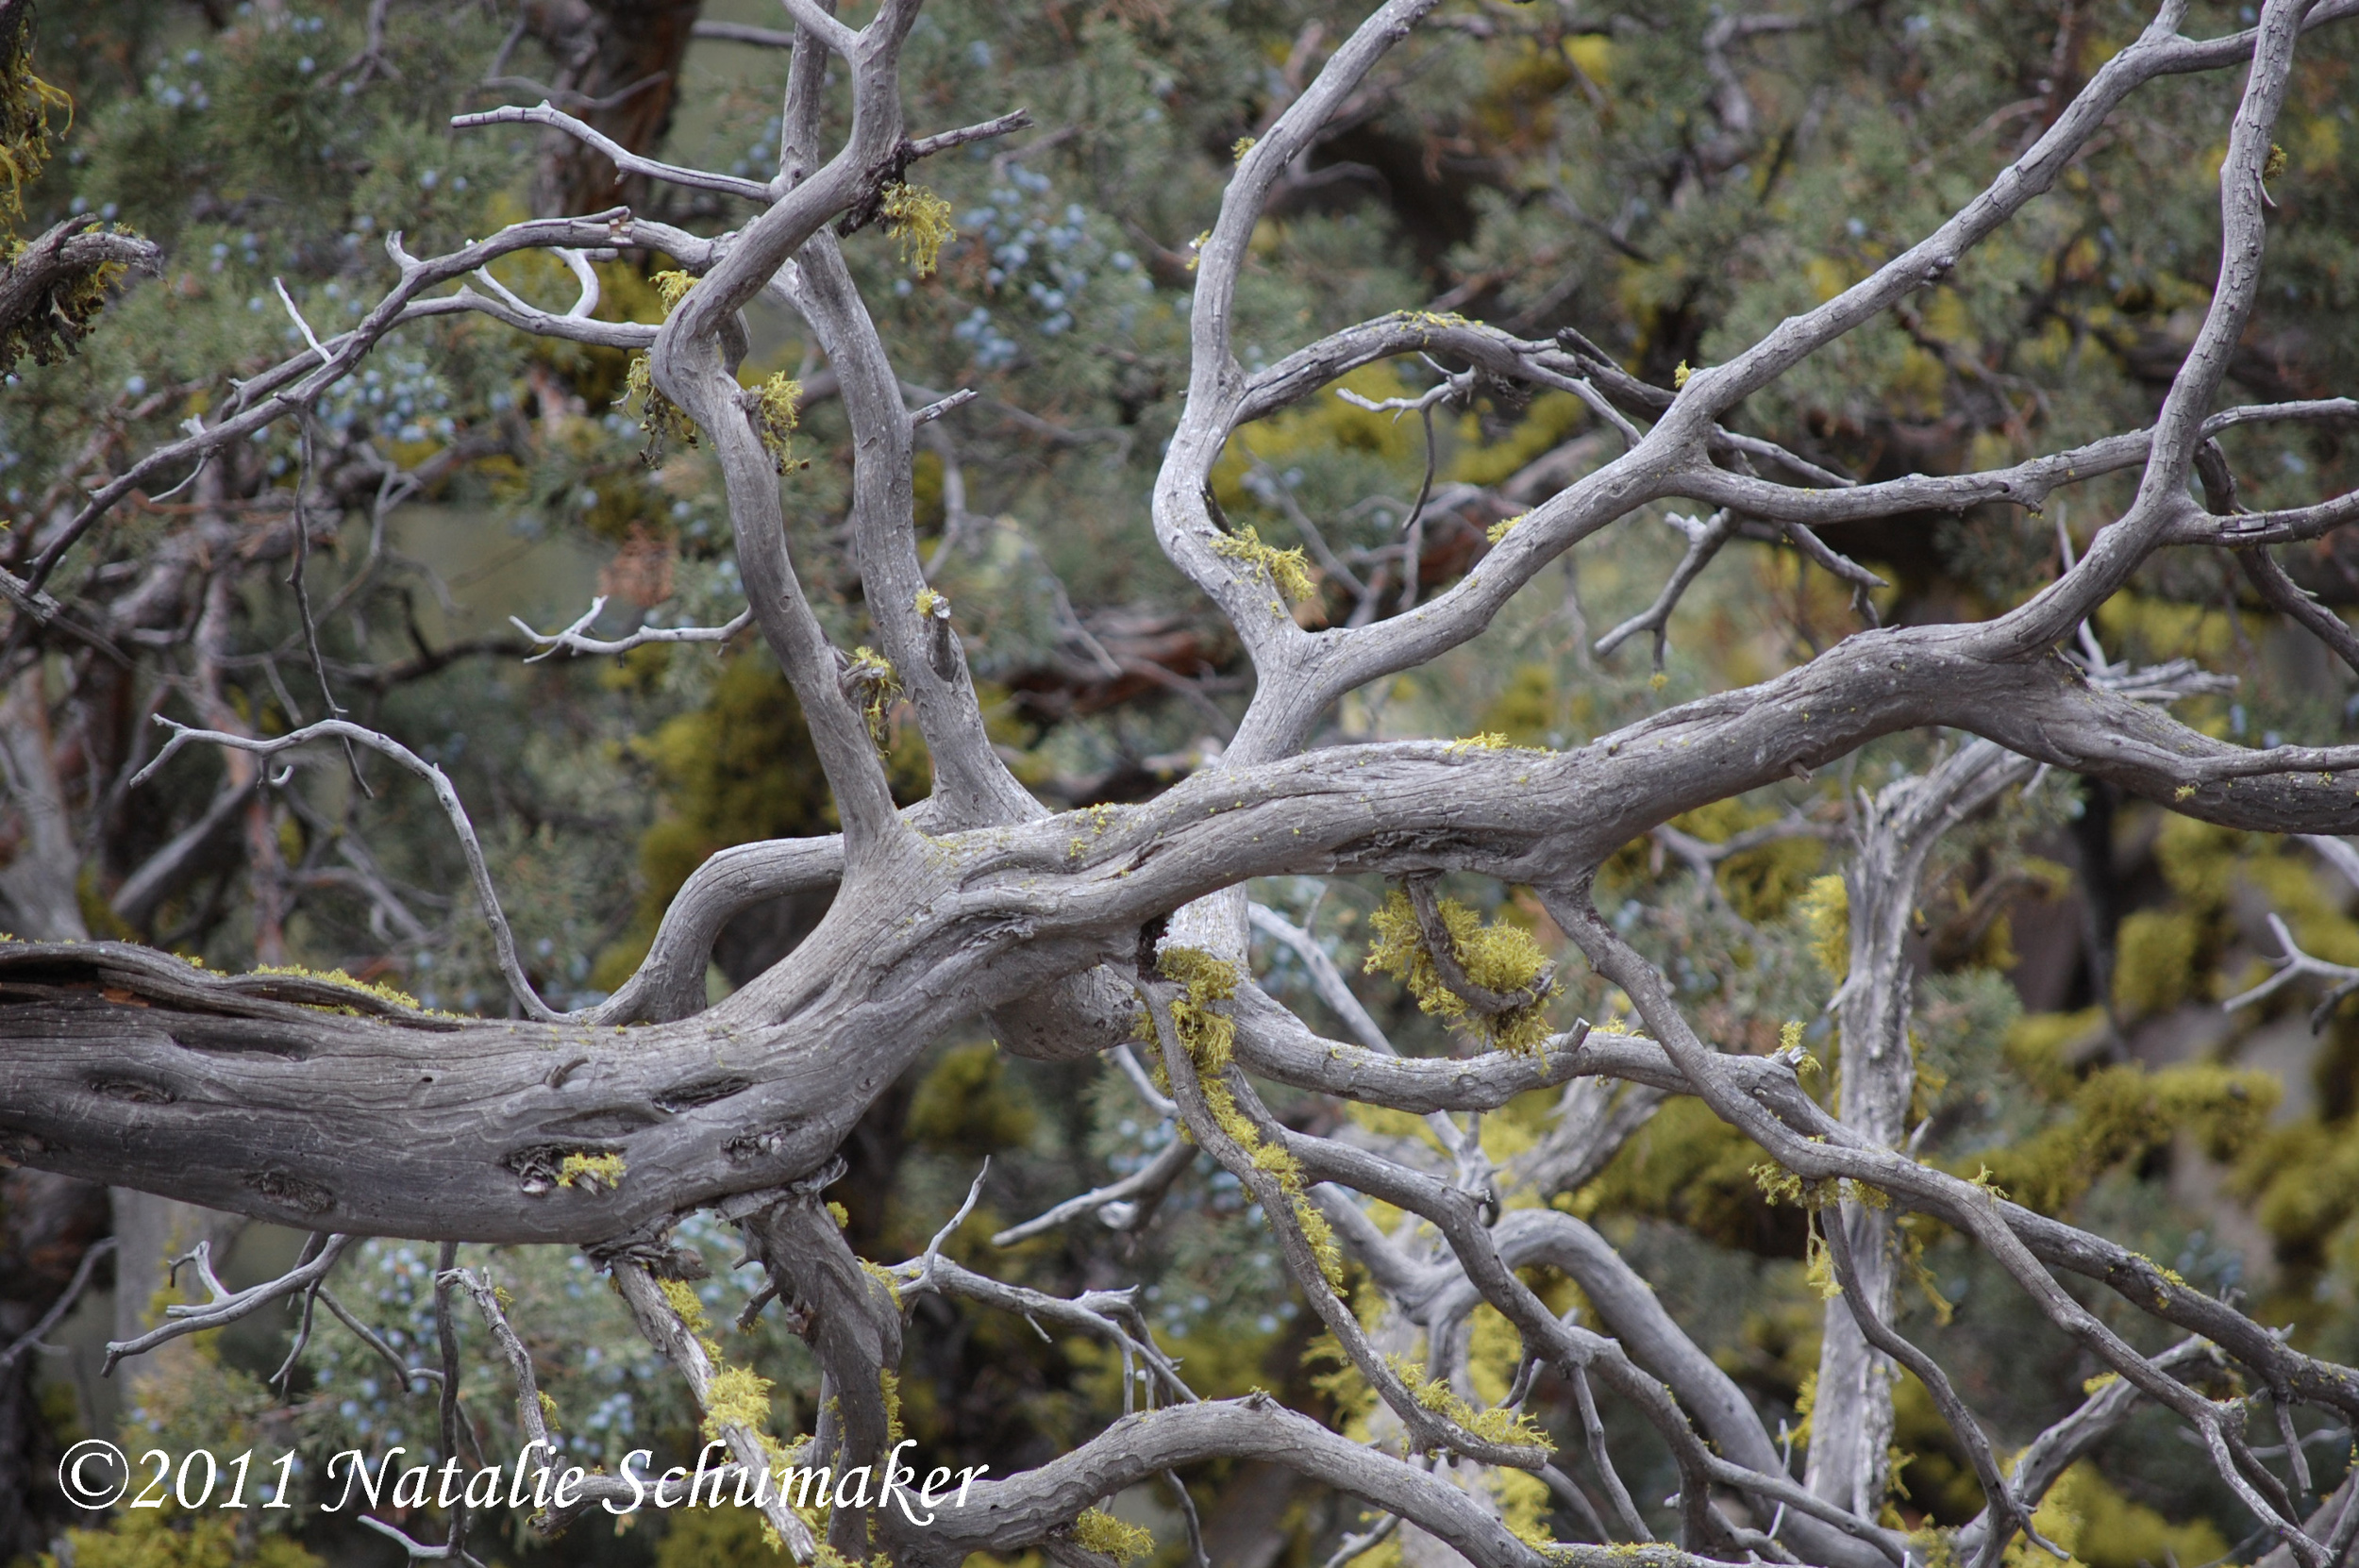 800x600        Bleached and gnarly branches show the high price of the wind and the rain. Out of the elements comes the beauty and refinement.